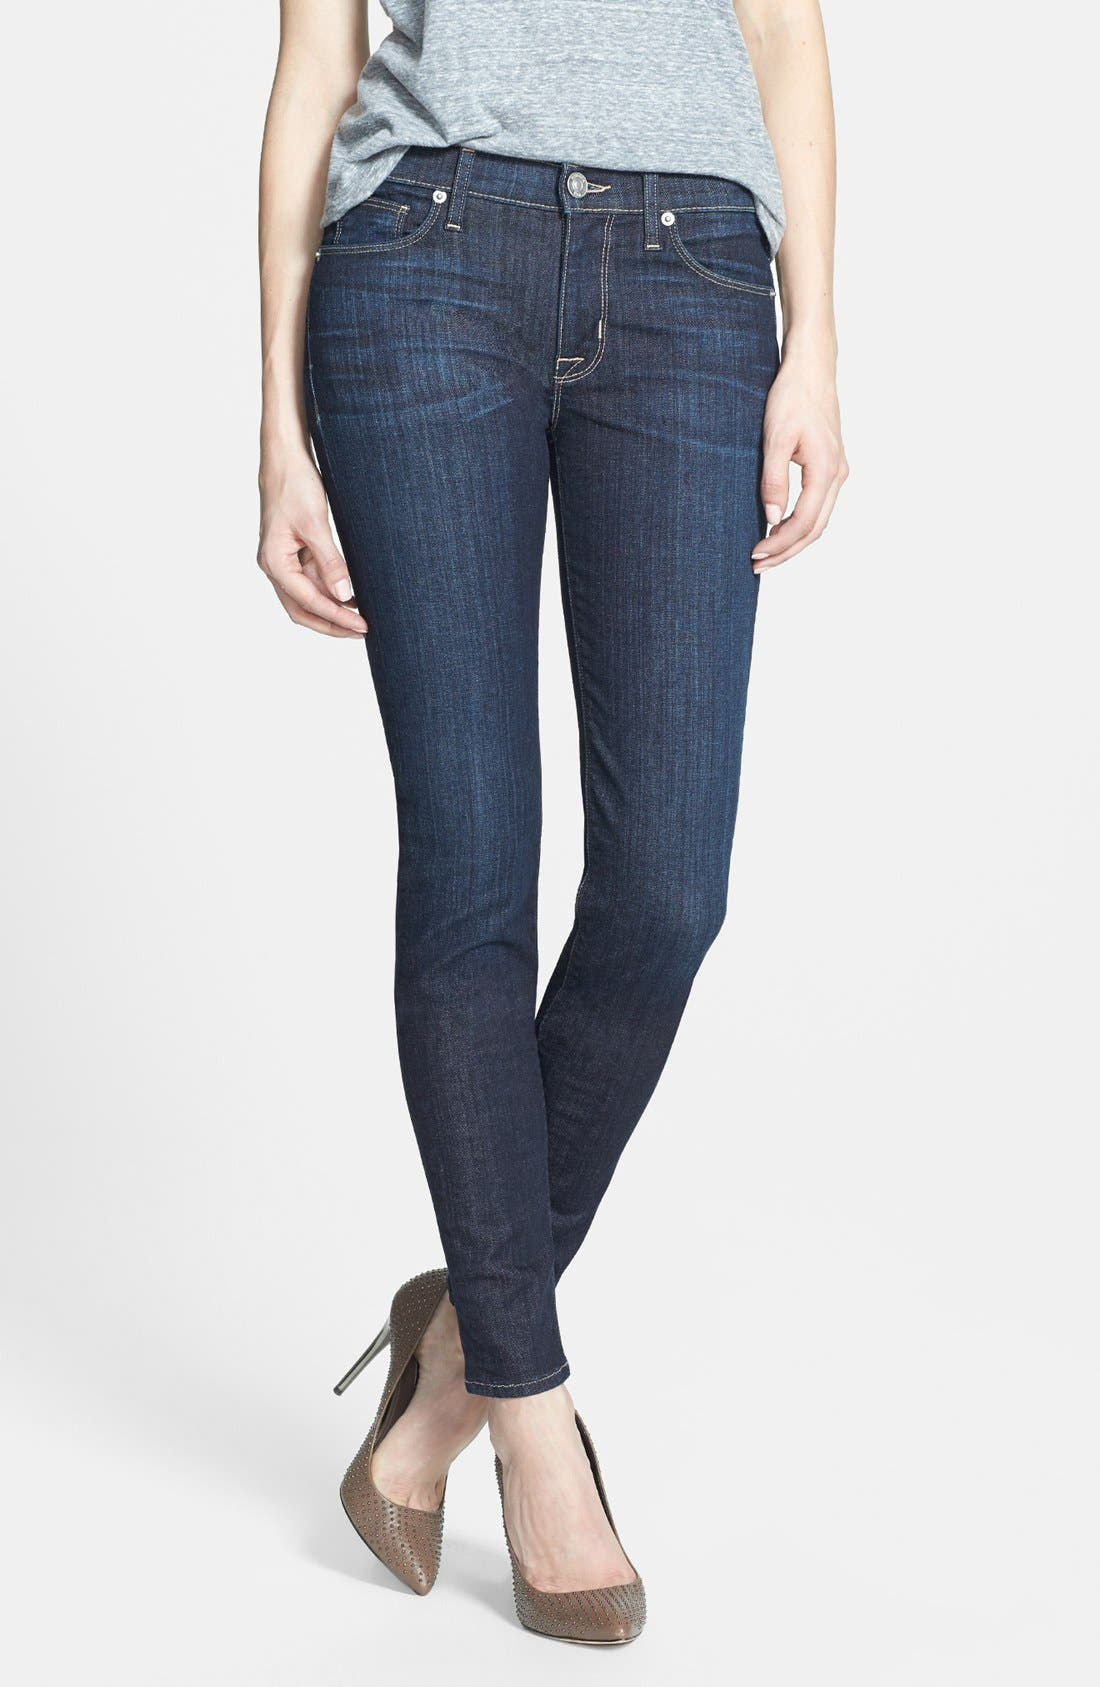 'Collette' Mid Rise Skinny Jeans, Main, color, 401